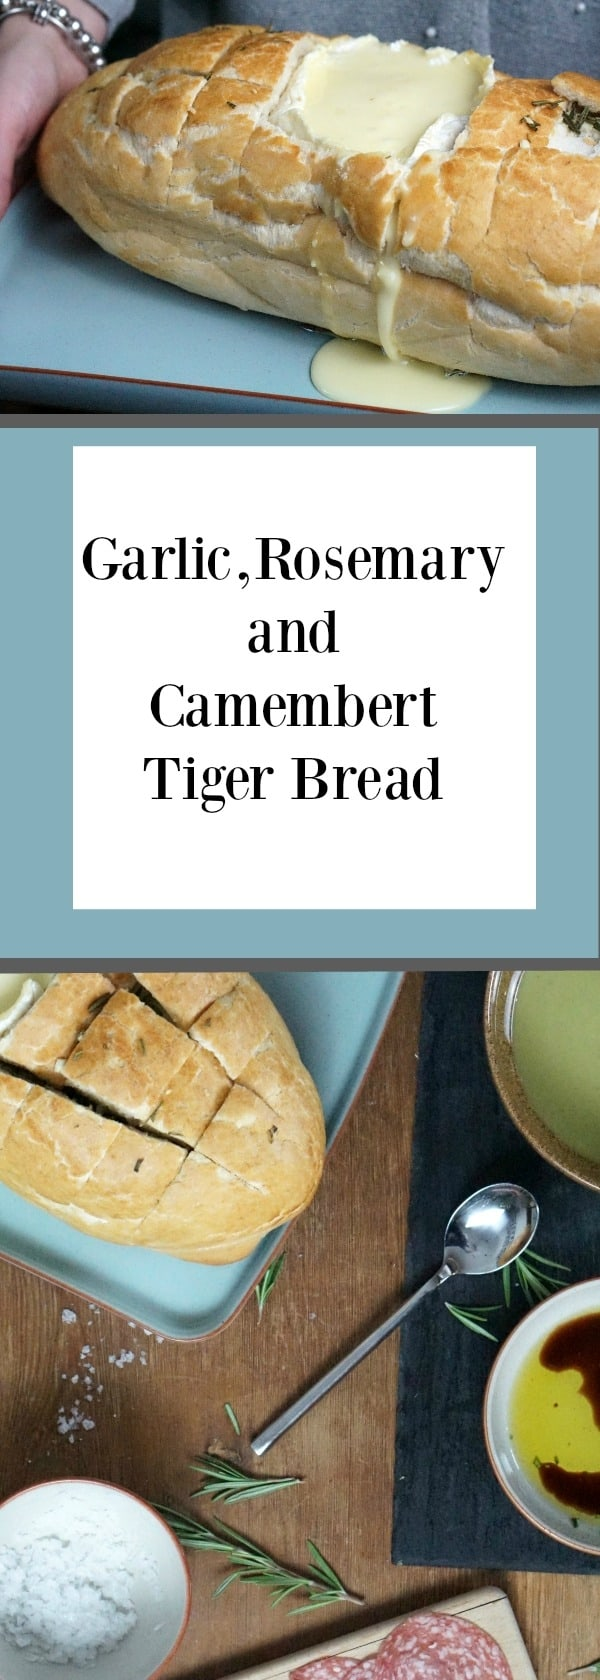 Garlic, Rosemary and Camembert Tiger Bread served with soup the perfect lunch for entertaining or lazy afternoons